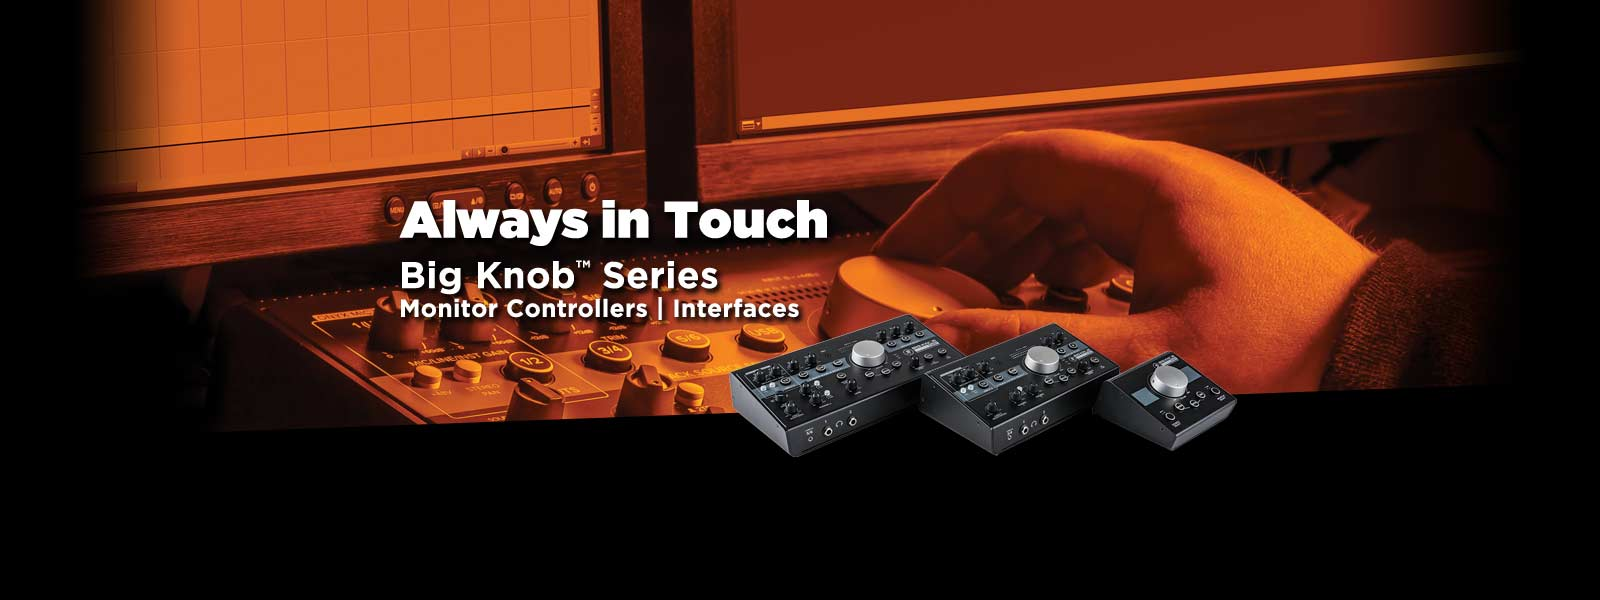 Big knob series monitor controllers and interfaces